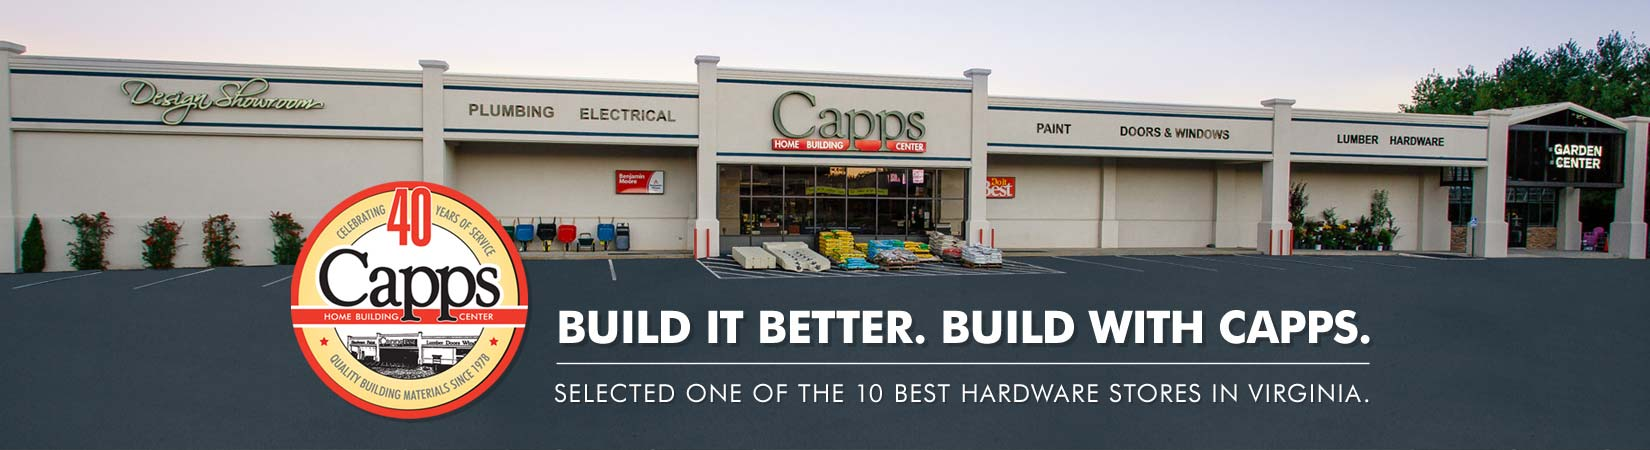 Capps Home Building Center Welcome Slide